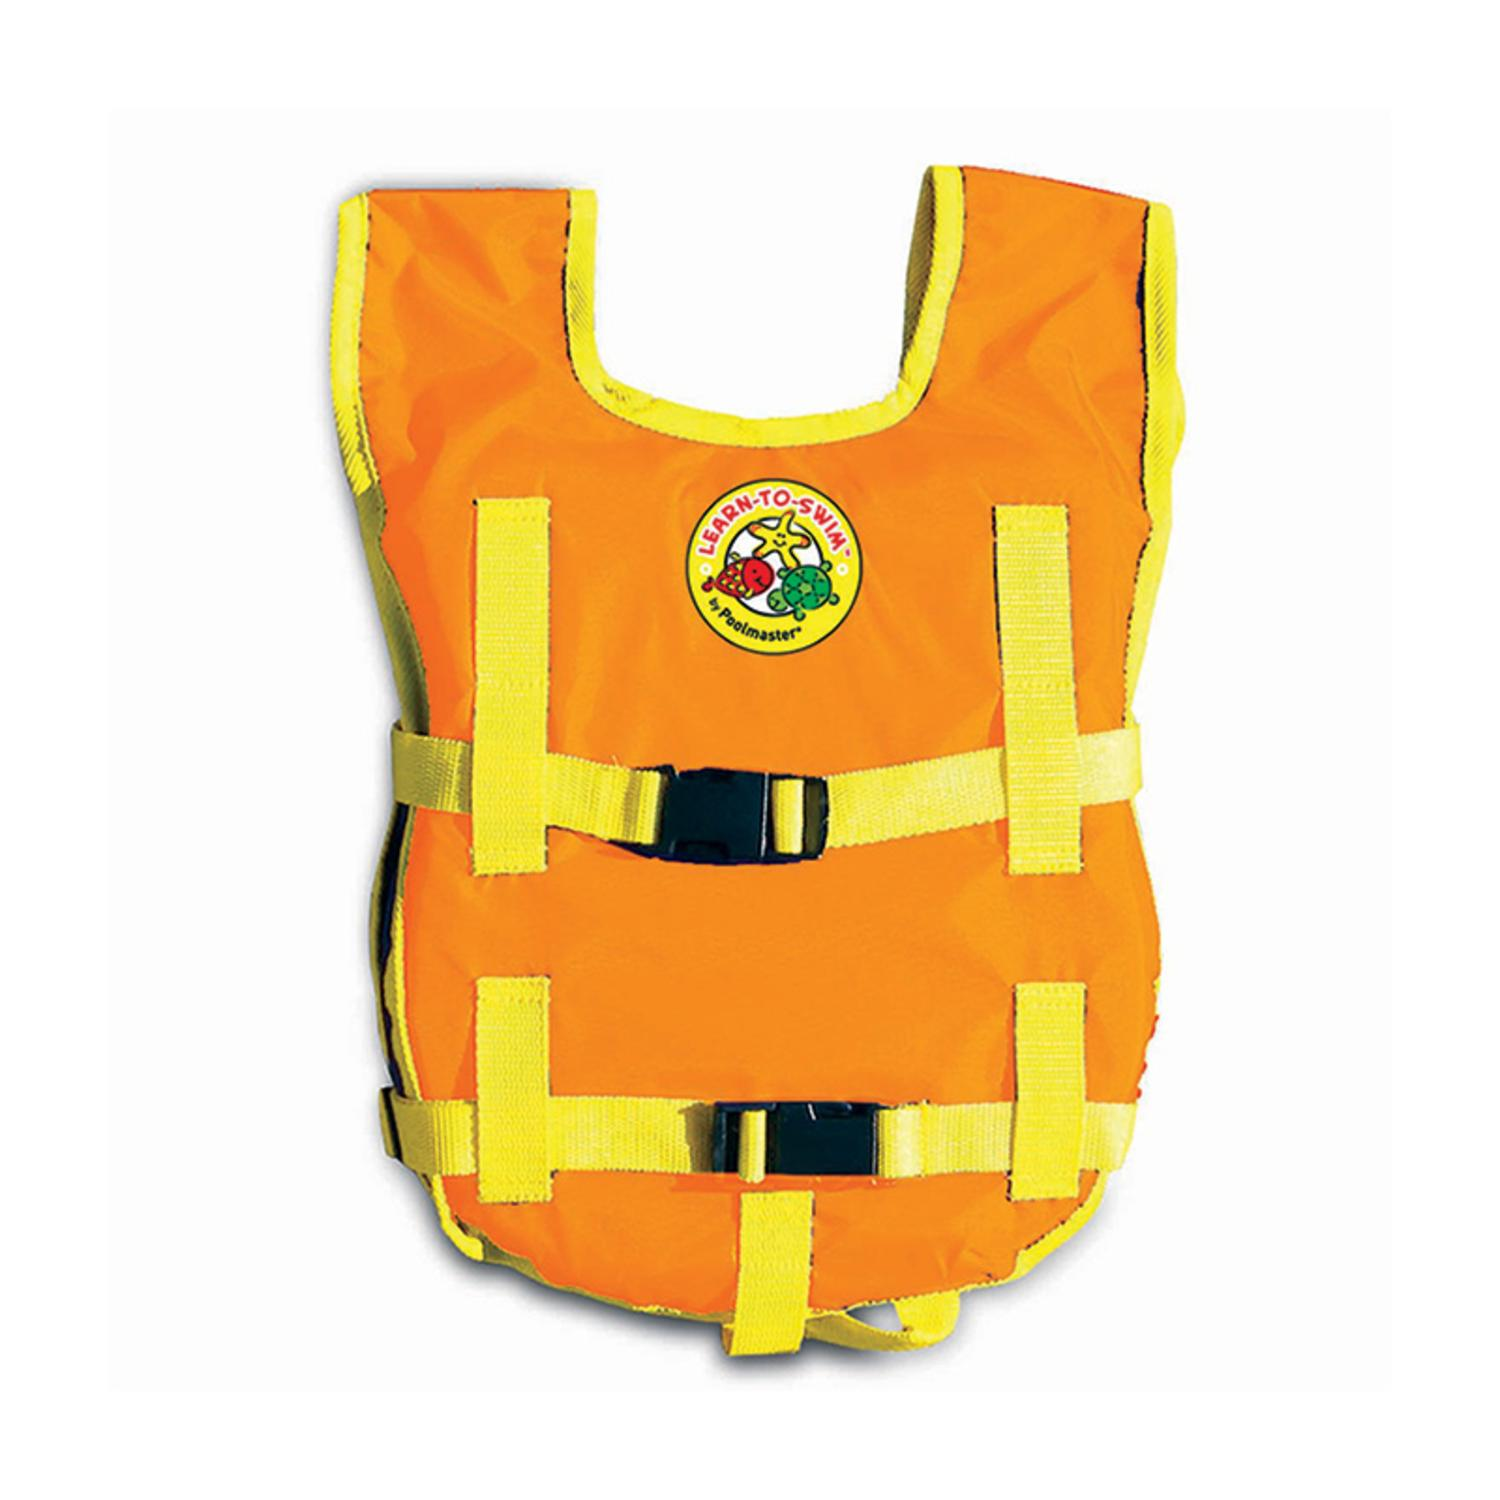 Orange and Yellow Unisex Child's Water or Swimming Pool Freestyler Swim Training Vest - Up to 45lbs